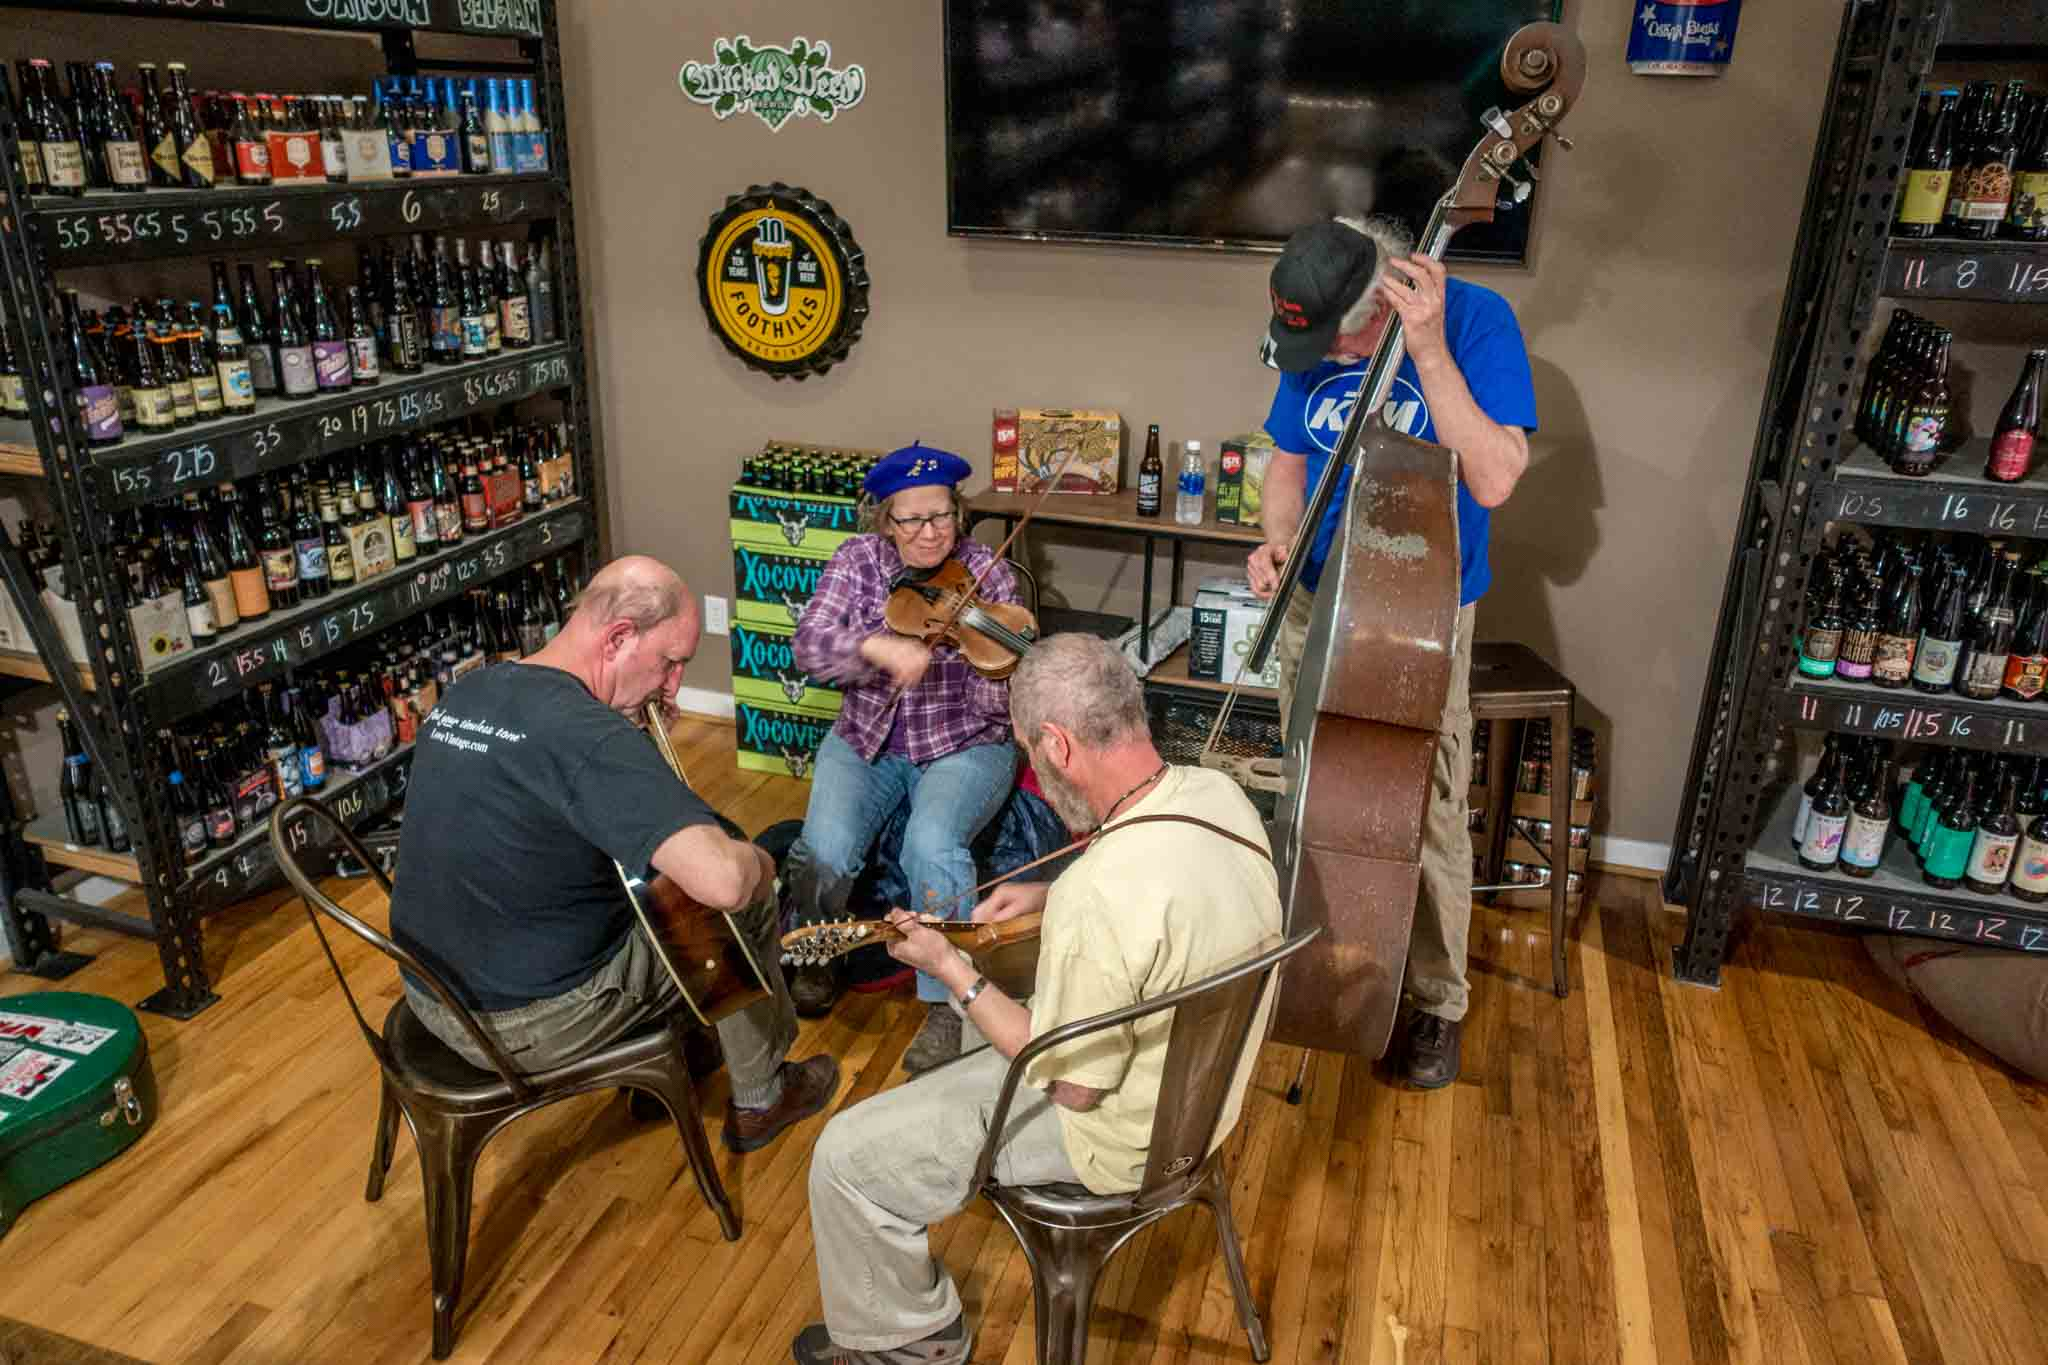 Jam session at White Elephant Beer Company